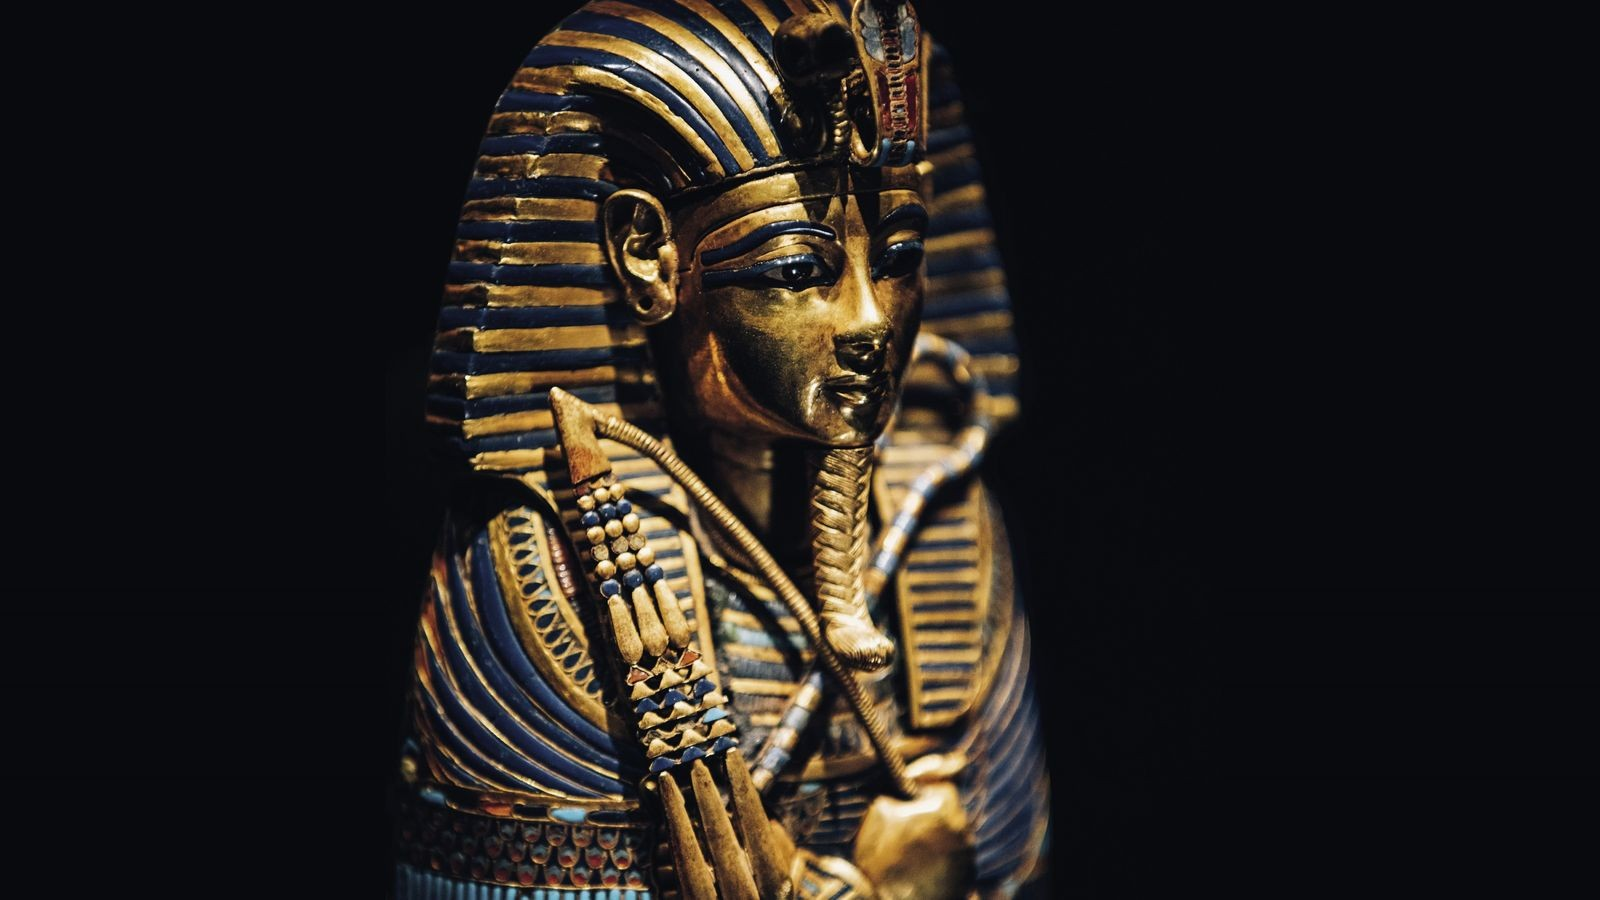 Five mysterious secrets about King Tutankhamun's tomb